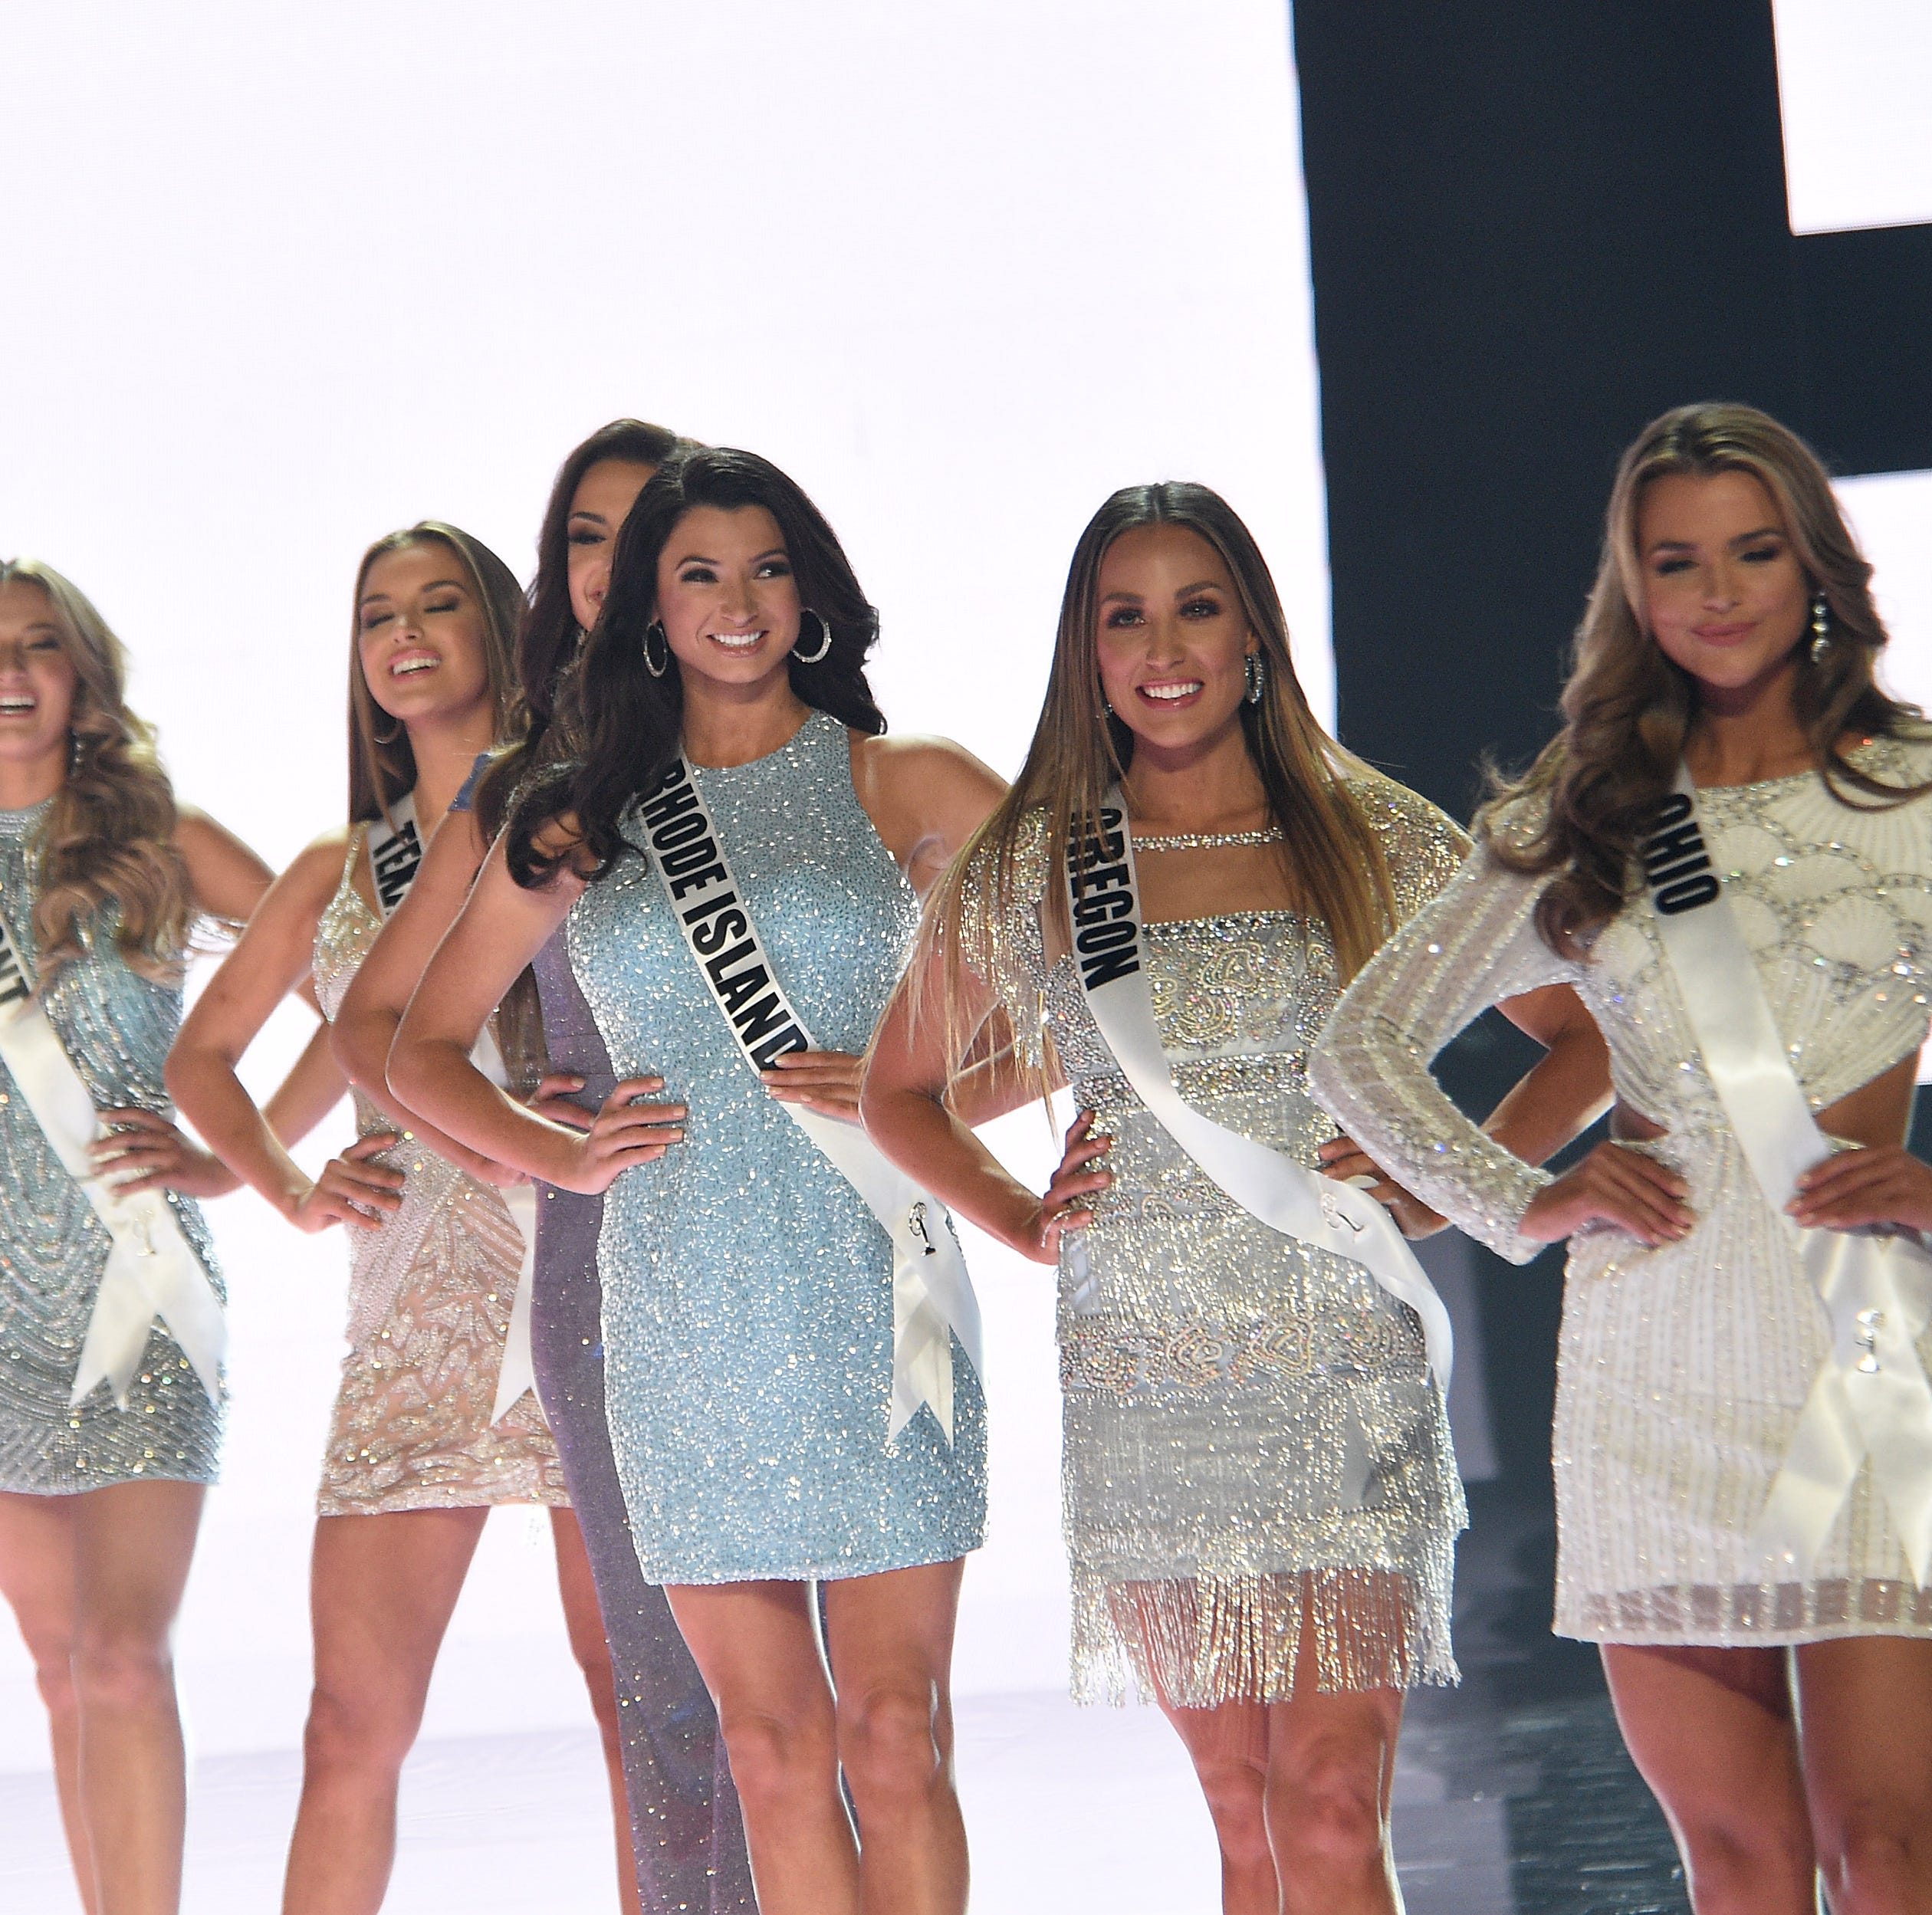 Miss USA vs. Miss America: What are the differences?